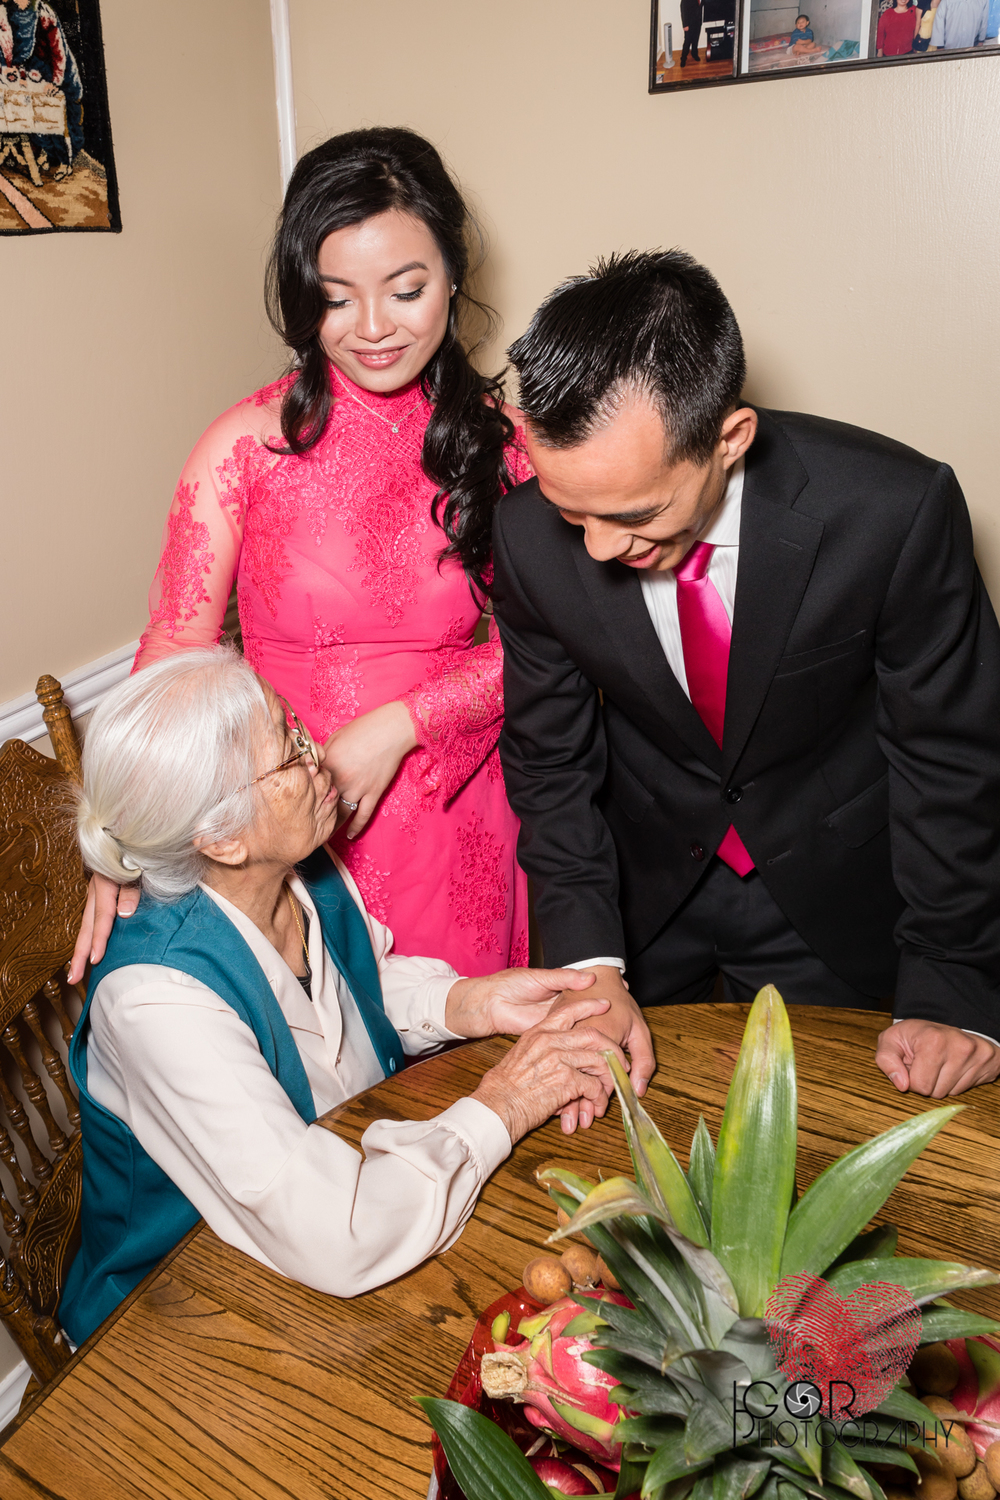 Tommy-linh-engagement-ceremony-14.jpg